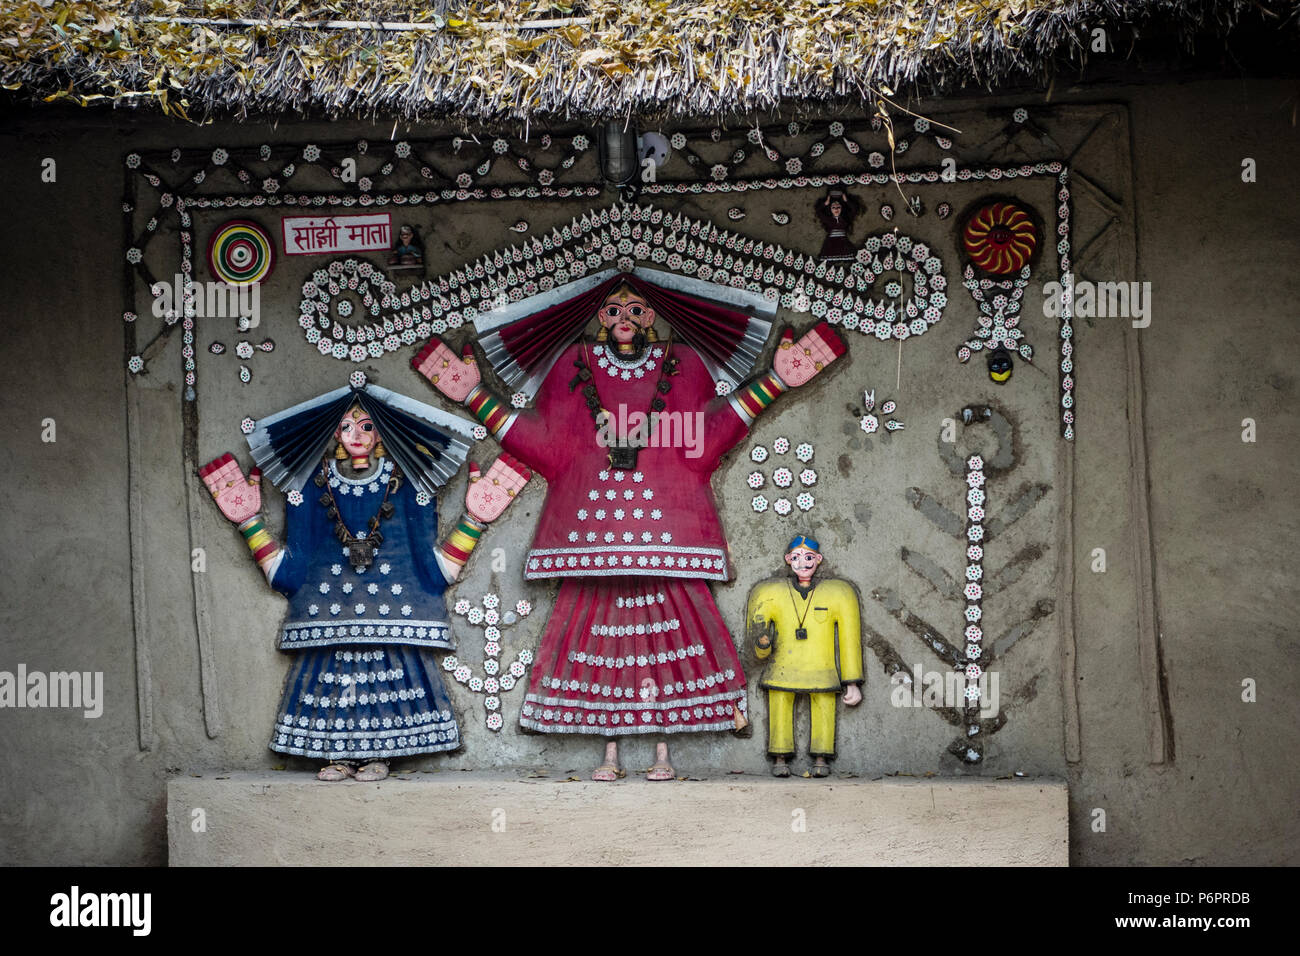 Exhibit of a wall painting with colorful figures in the National Crafts Museum, New Delhi, India - Stock Image